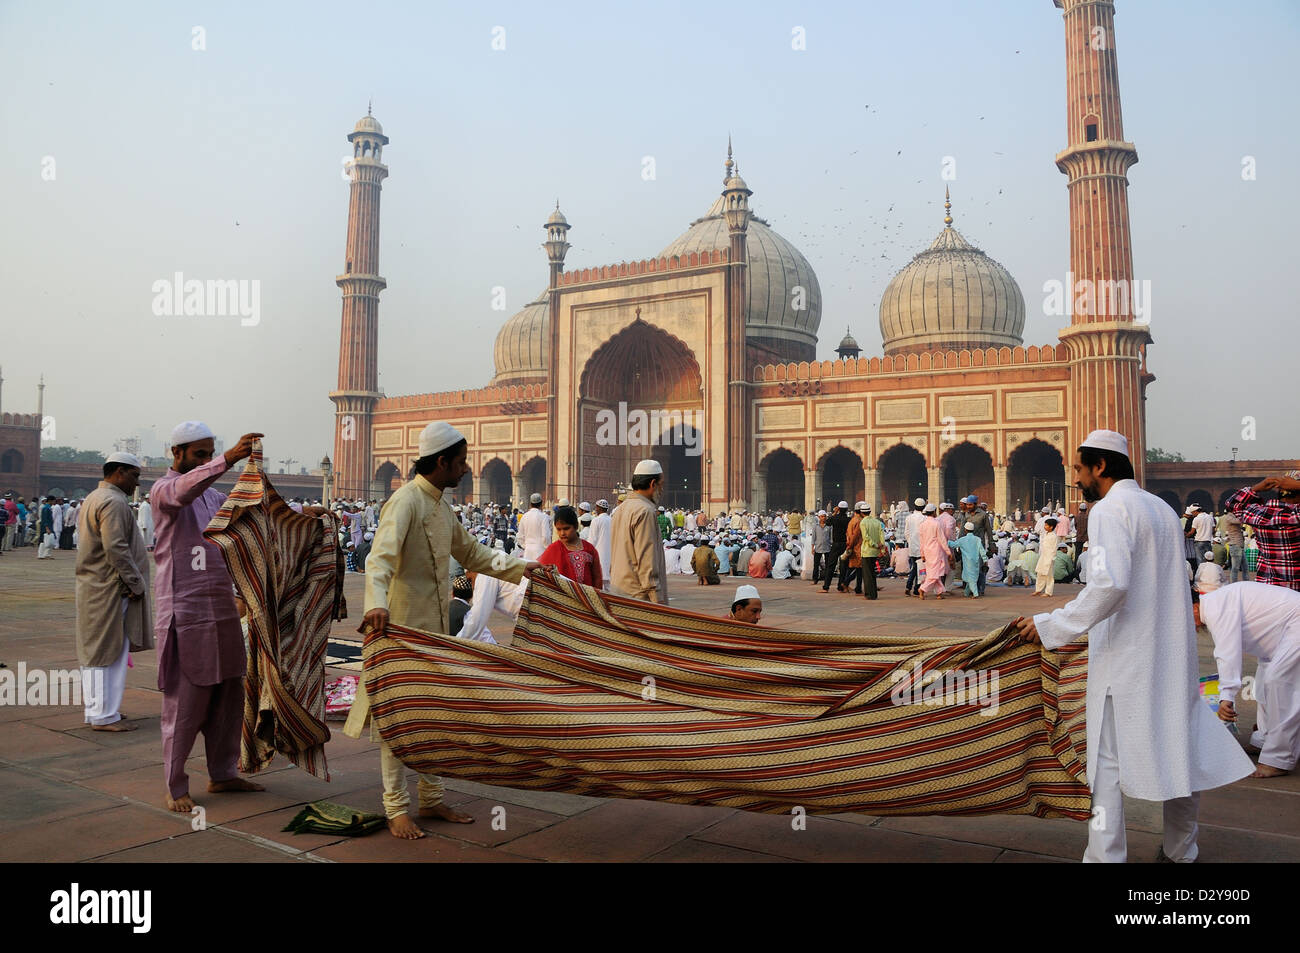 Last day of Ramadan at Jama Masjid in Old Delhi. People started to come and sit for the ceremony. - Stock Image